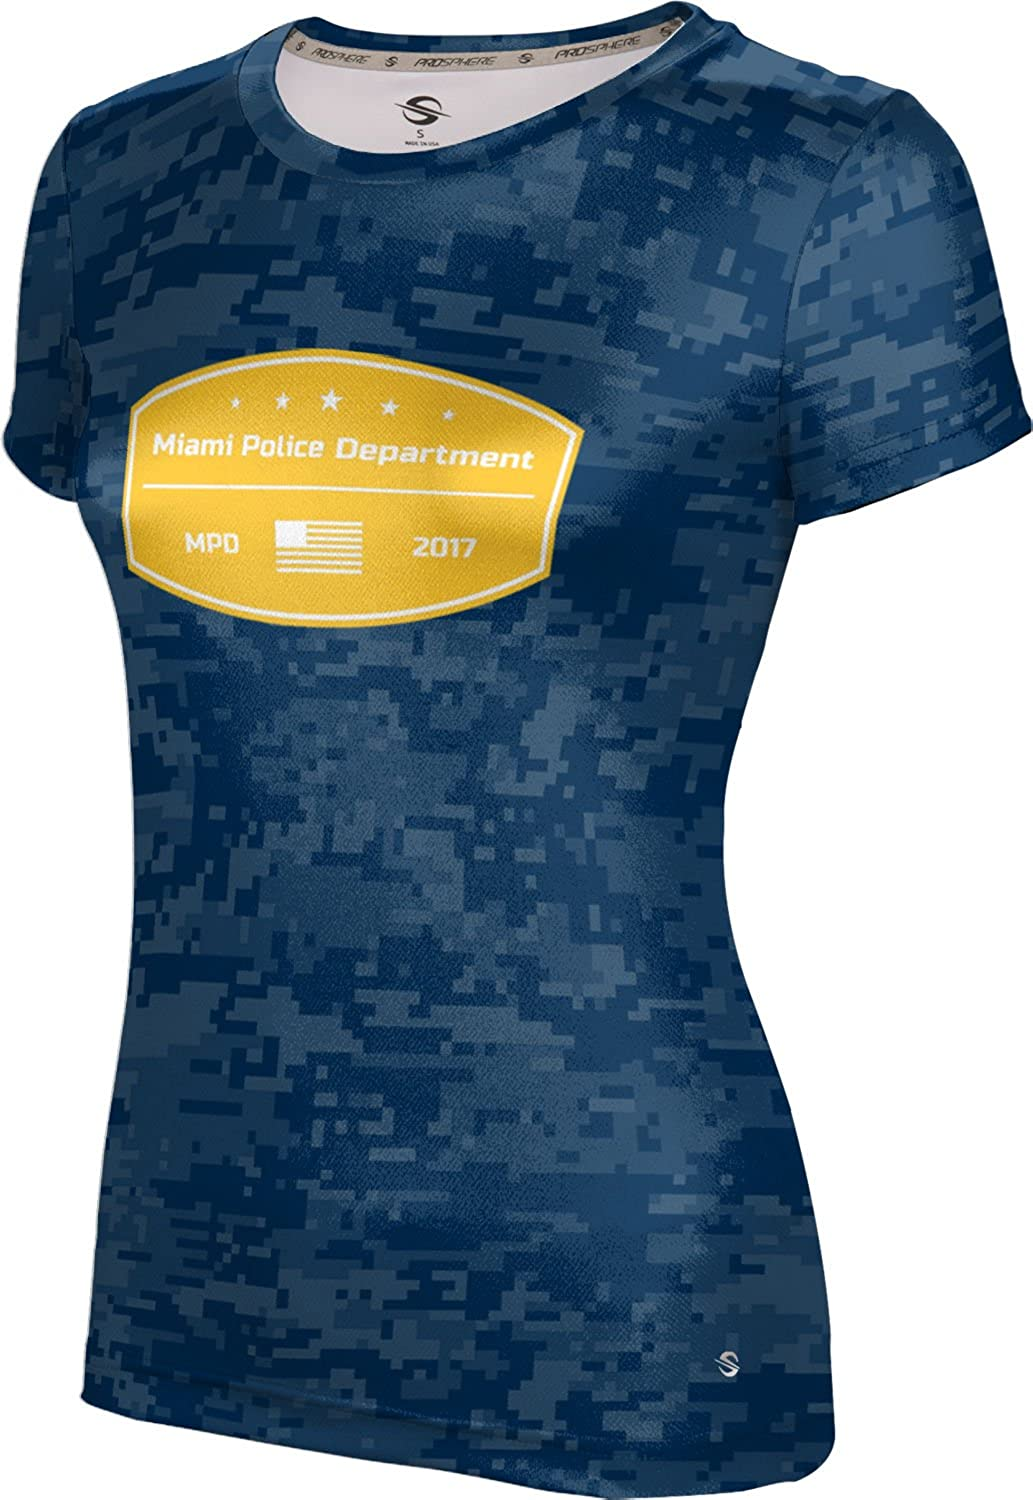 ProSphere Women's Miami Police Department Digital Tech Tee